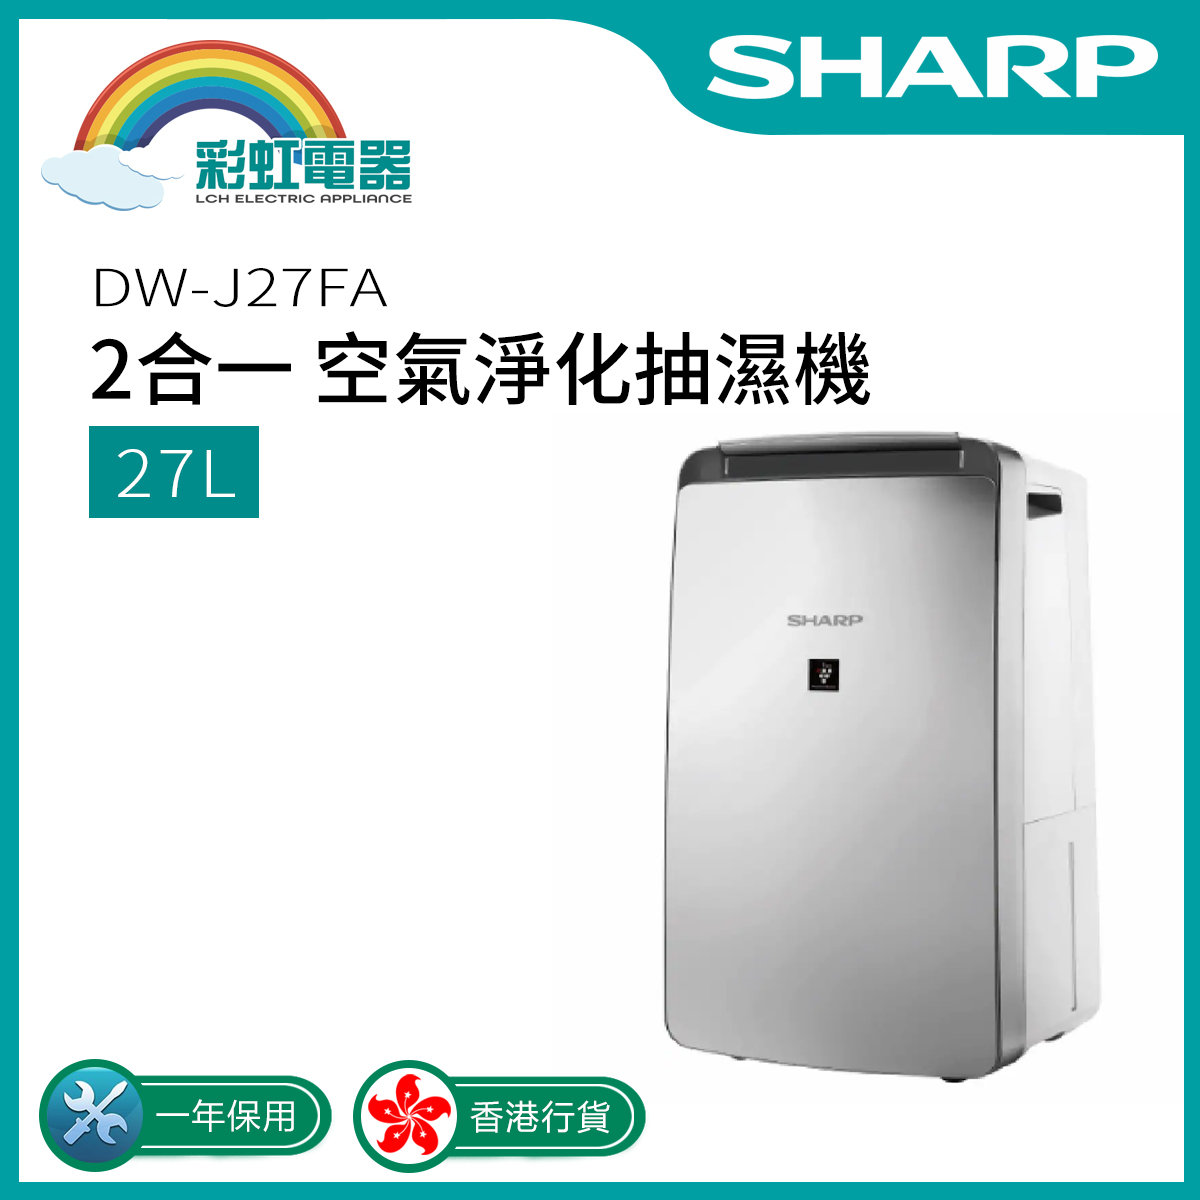 DW-J27FA HD Plasmacluster 2-in-1 Air Purifying Dehumidifier